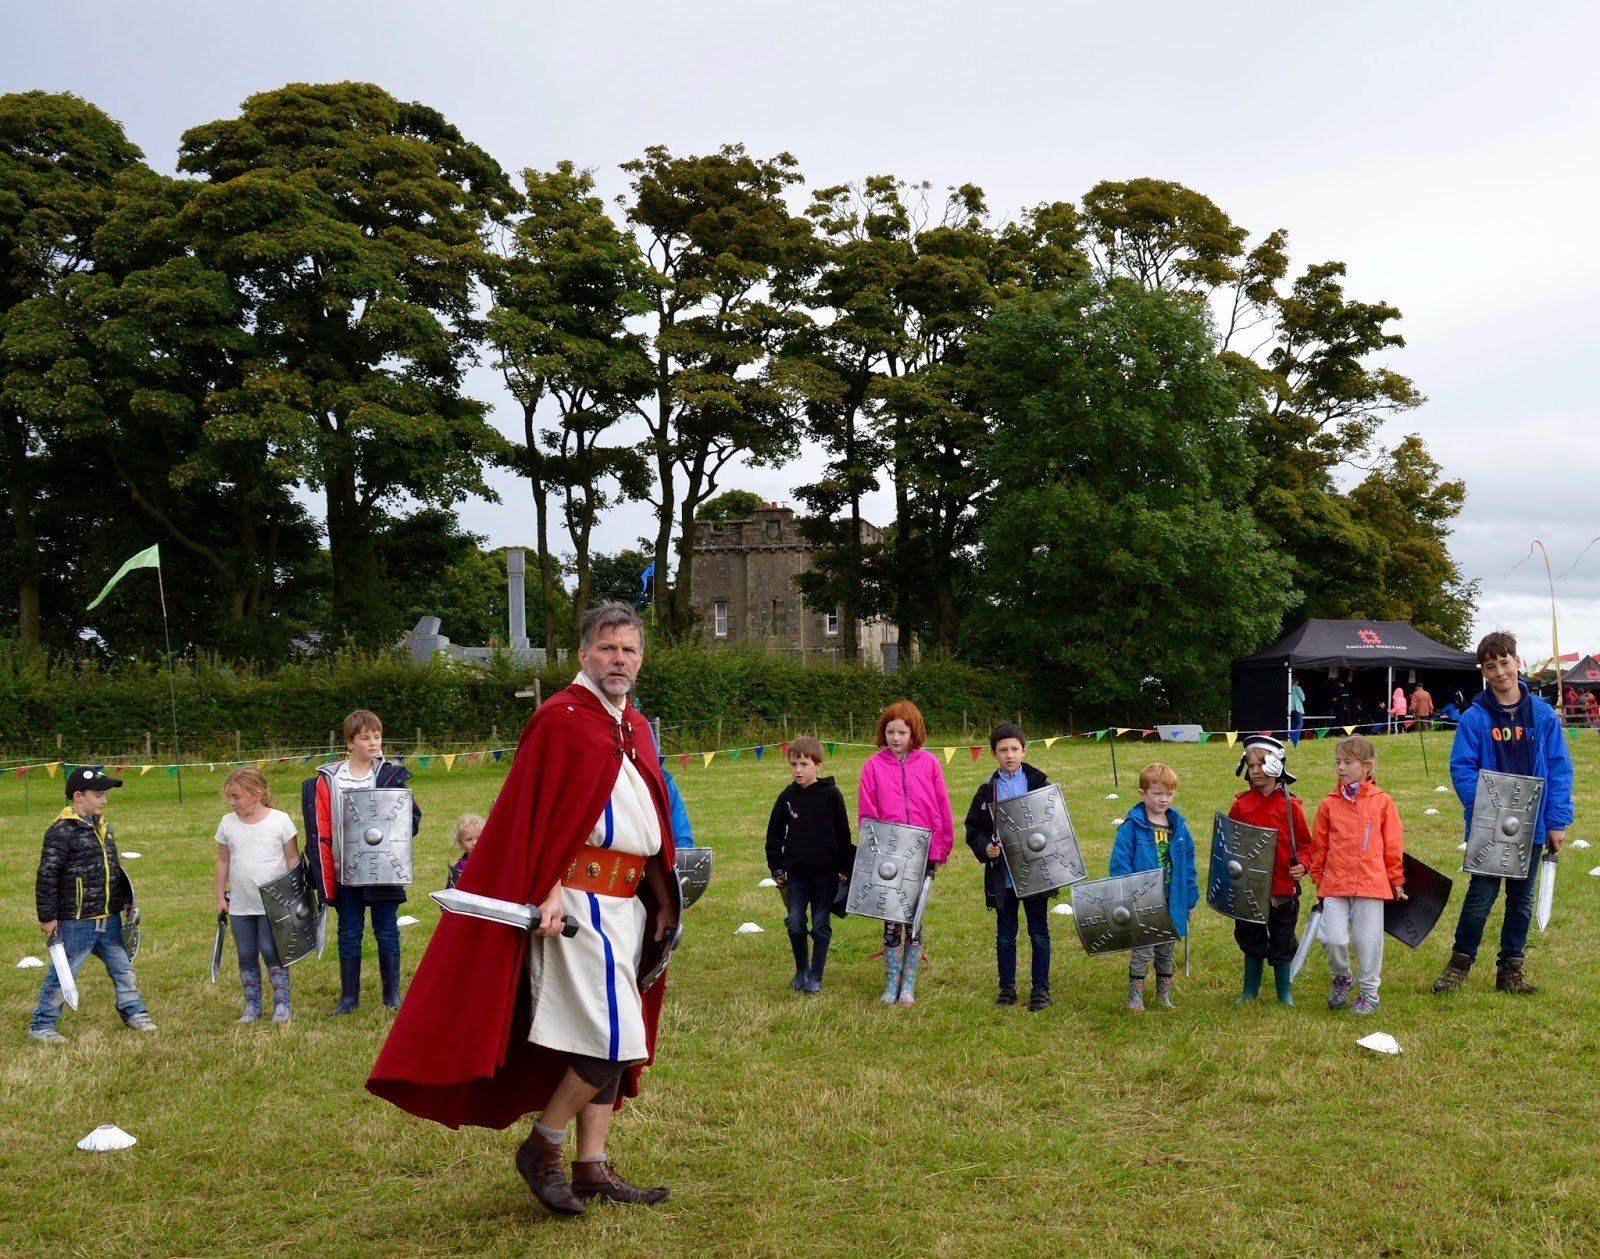 Hadrian's Wall Live 2016 | Birdoswald Roman Fort & Housesteads - A Review - roman army training